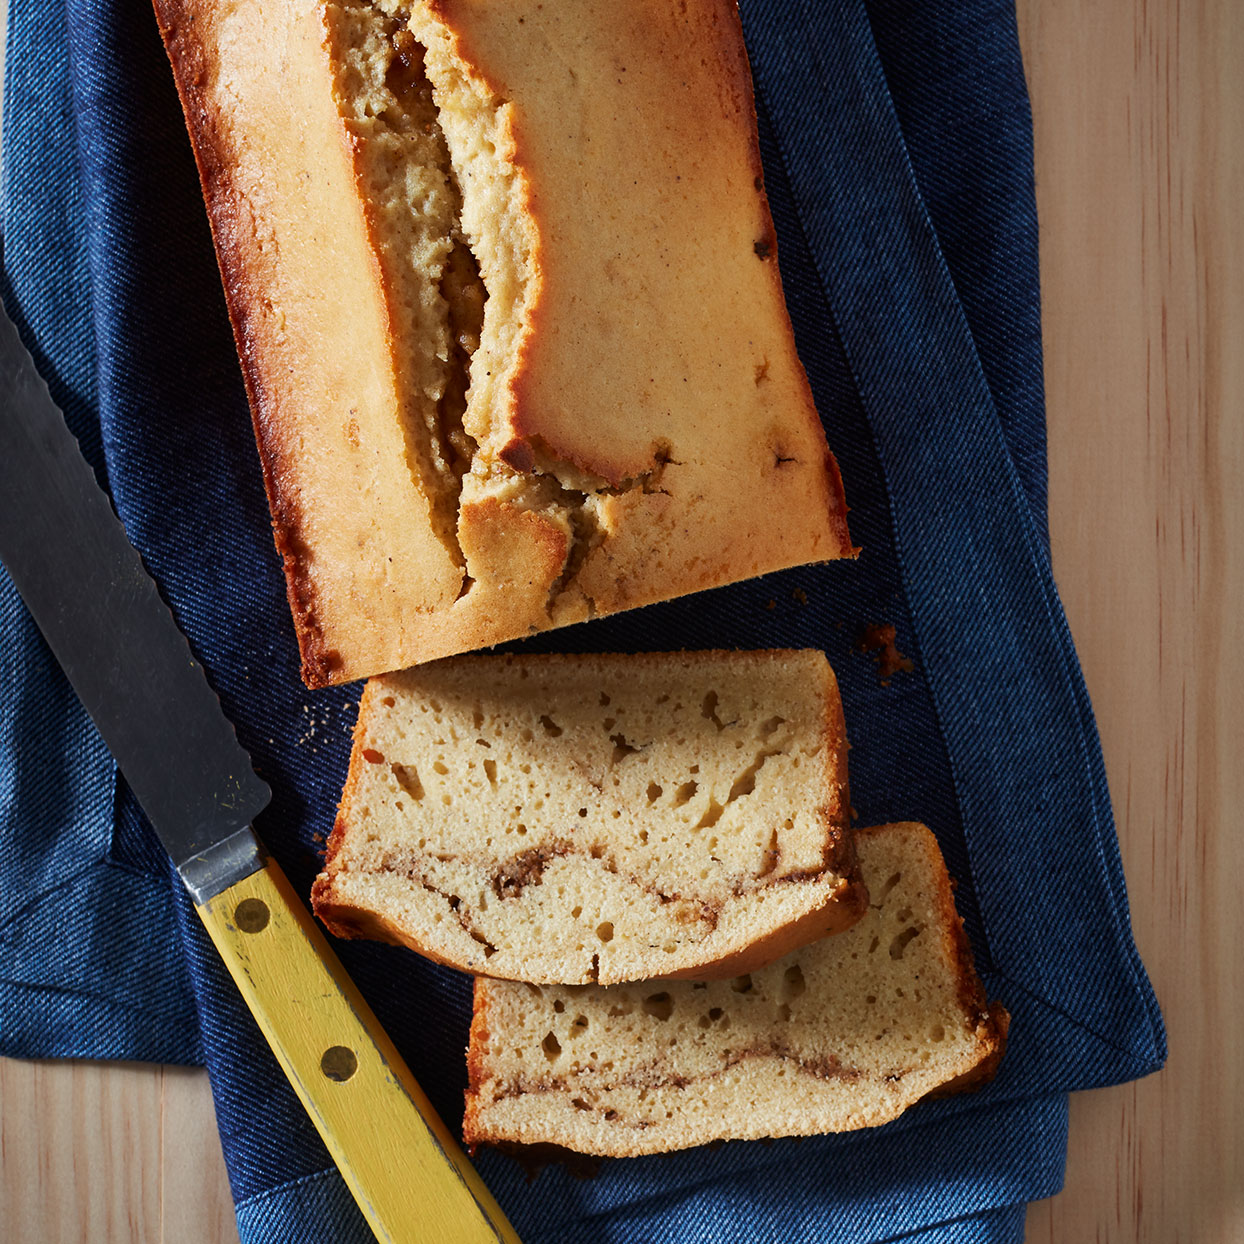 A mashed russet potato gives a light and tender crumb to this tea cake recipe. Slices of the loaf are wonderful the next day, toasted and glossed with butter.